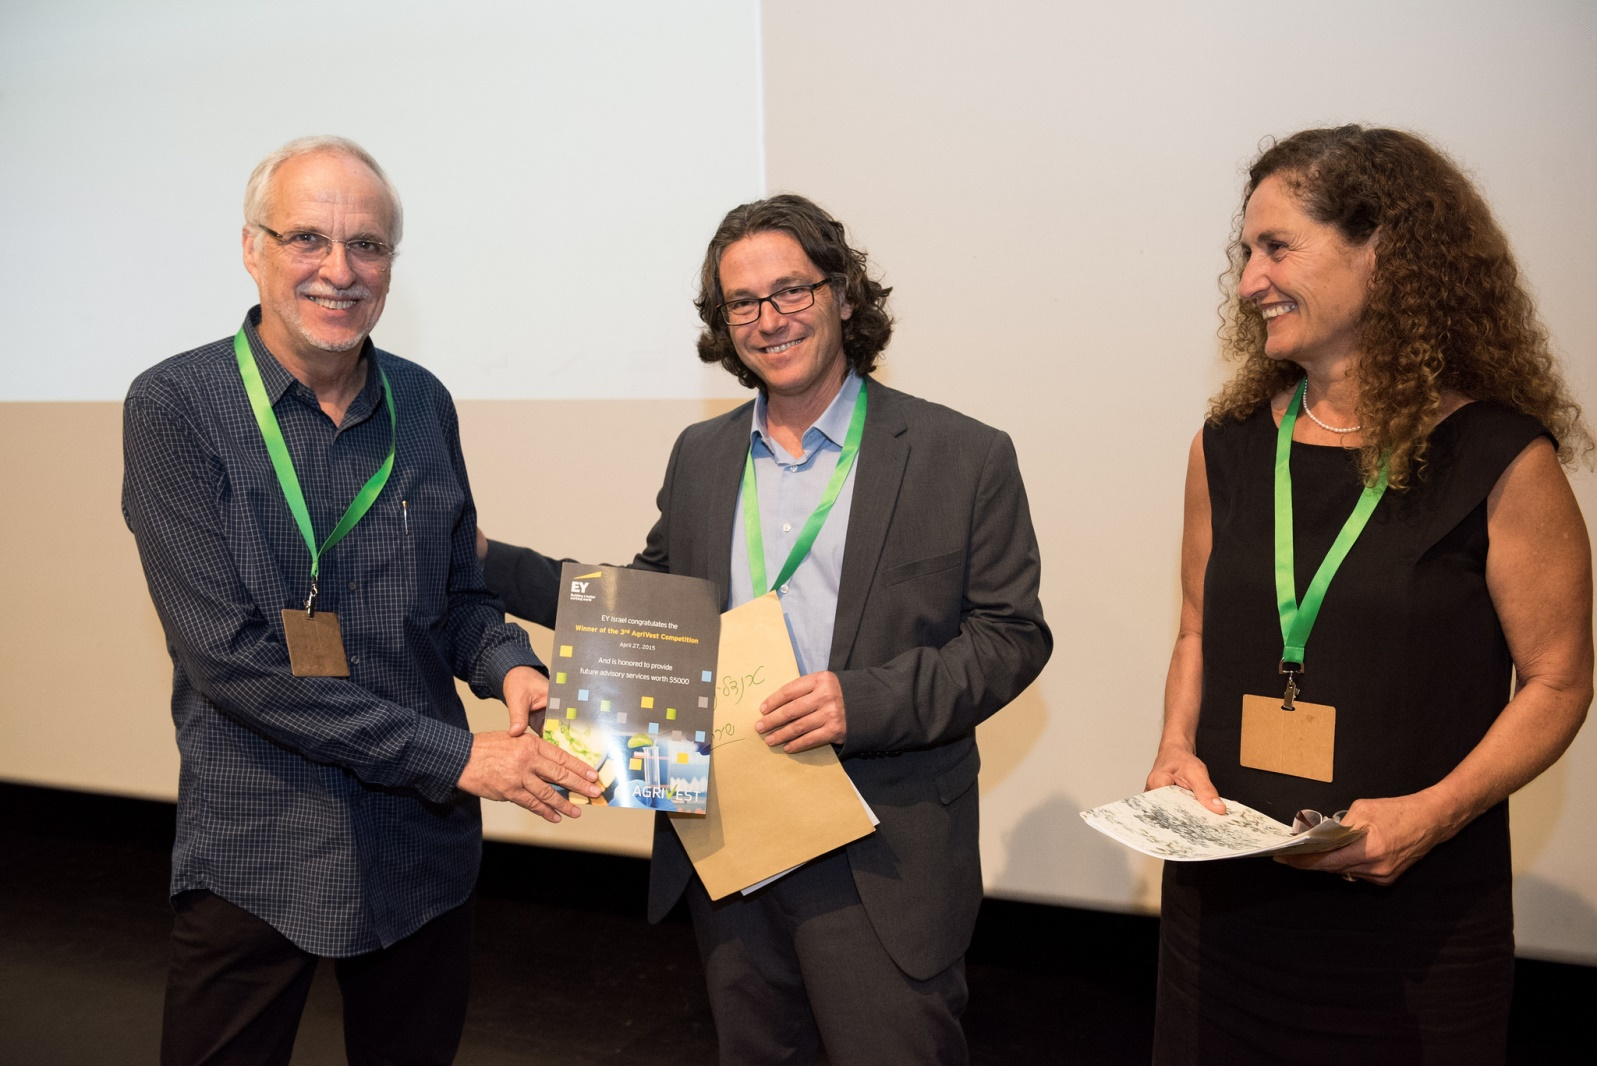 DouxMatok's Eran Baniel, left, receiving the AgriVest 2015 Best Company award from Director of the Investment Promotion Center of the Israeli Ministry of Industry, Trade and Labor Oded Distel and Nitza Kardish, CEO of Trendlines Agtech. Photo by Nitzan ZoharTrendlines Group